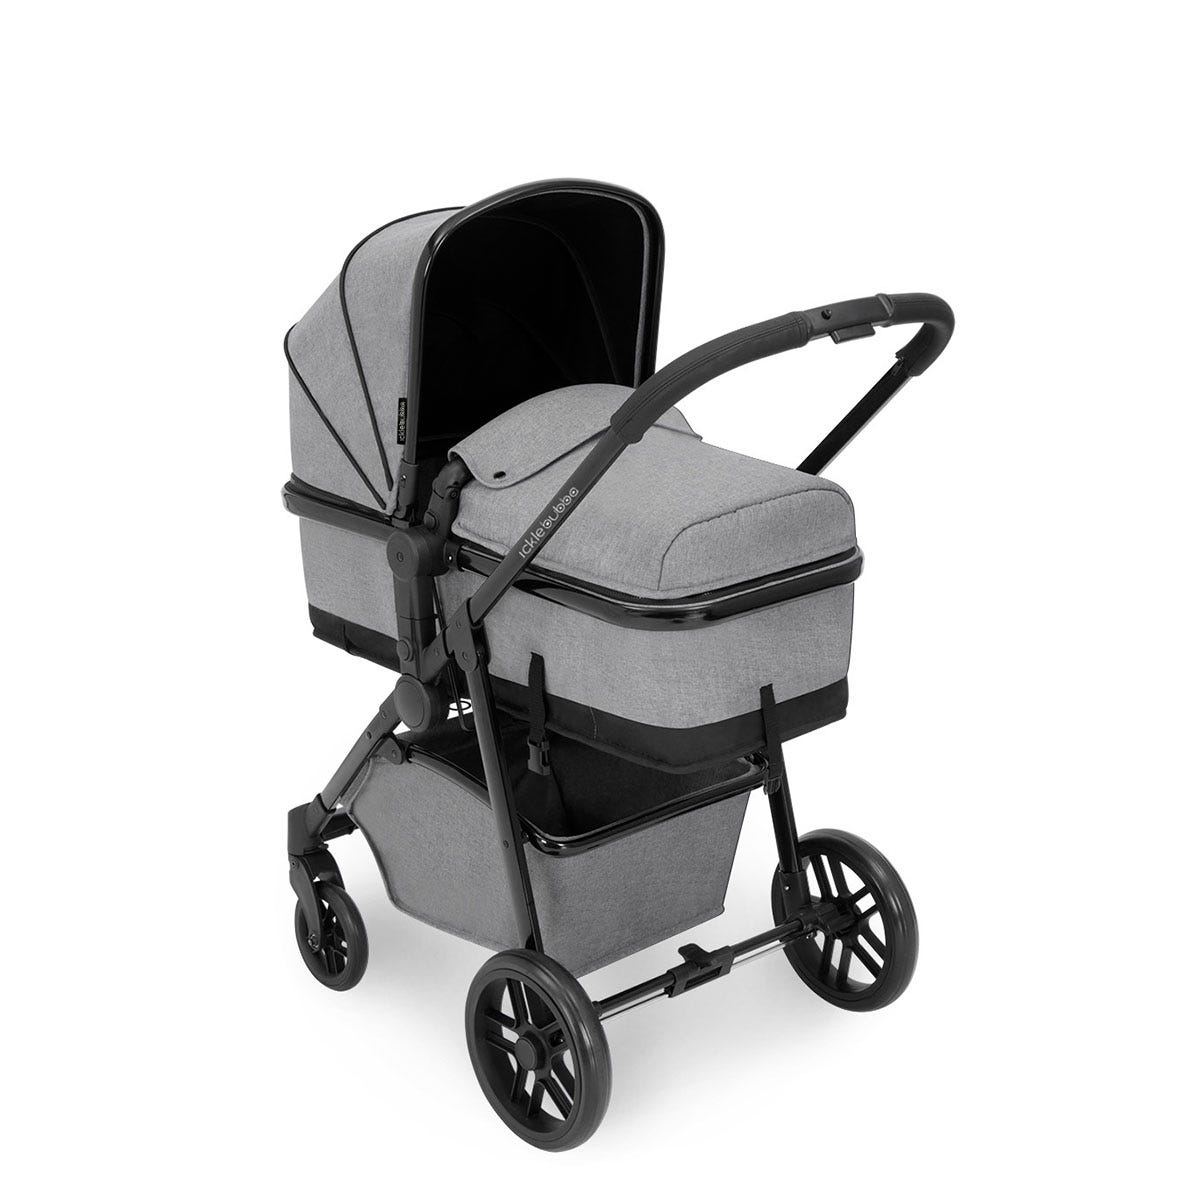 Ickle Bubba Moon 3 in 1 Travel System ISOFIX - Space Grey on Black with Black Handles